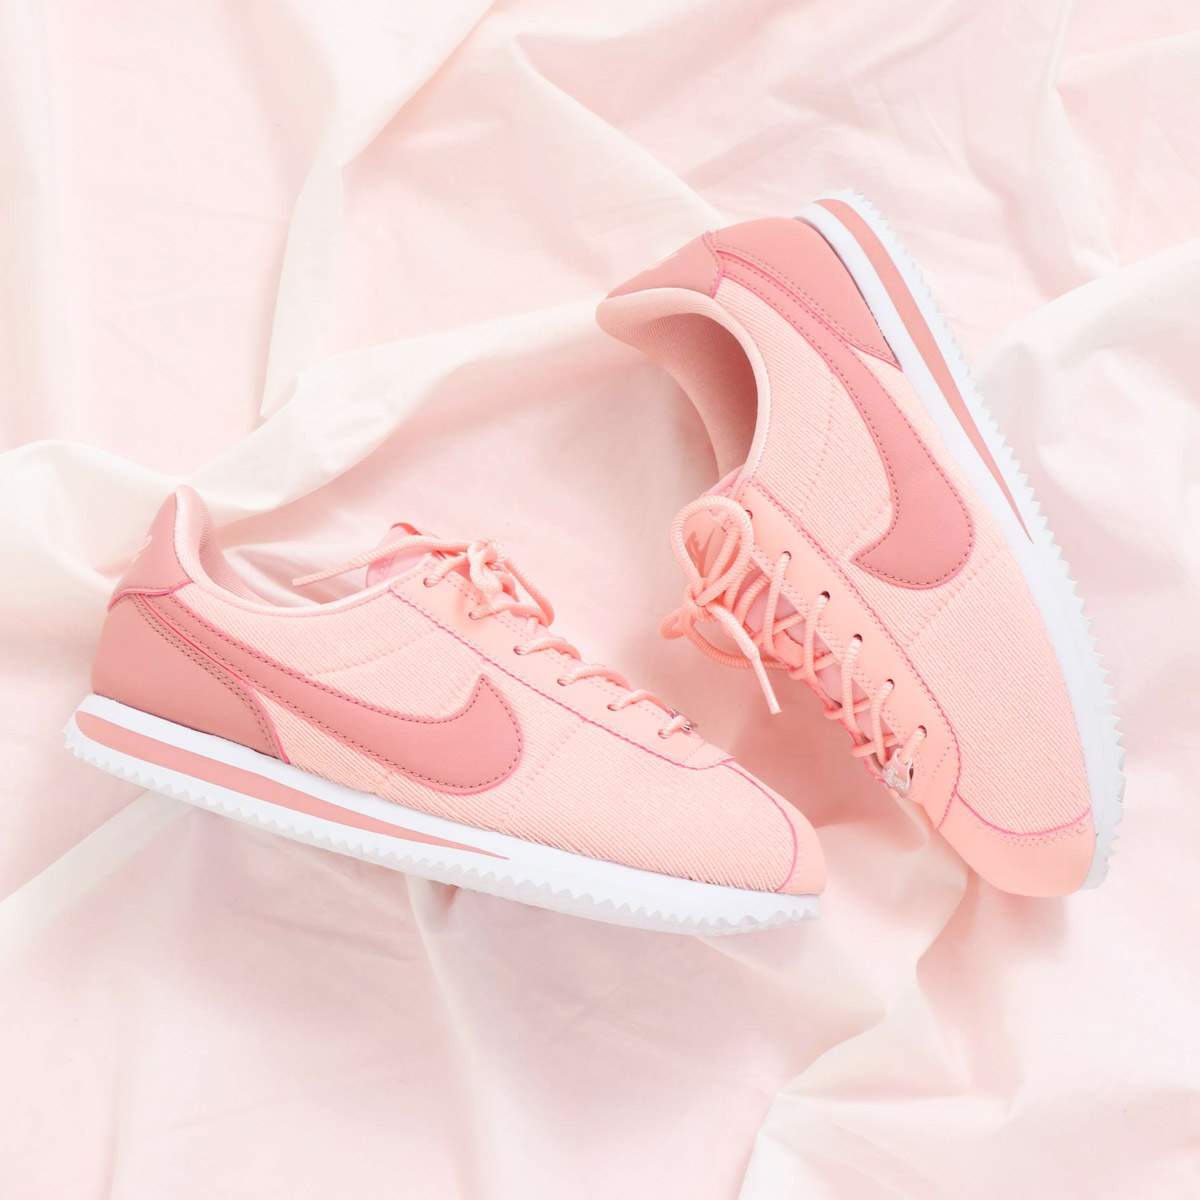 detailed look e5735 bbd90 atmos pink  NIKE CORTEZ BASIC TXT SE (GS) (ナイキコルテッツ ...